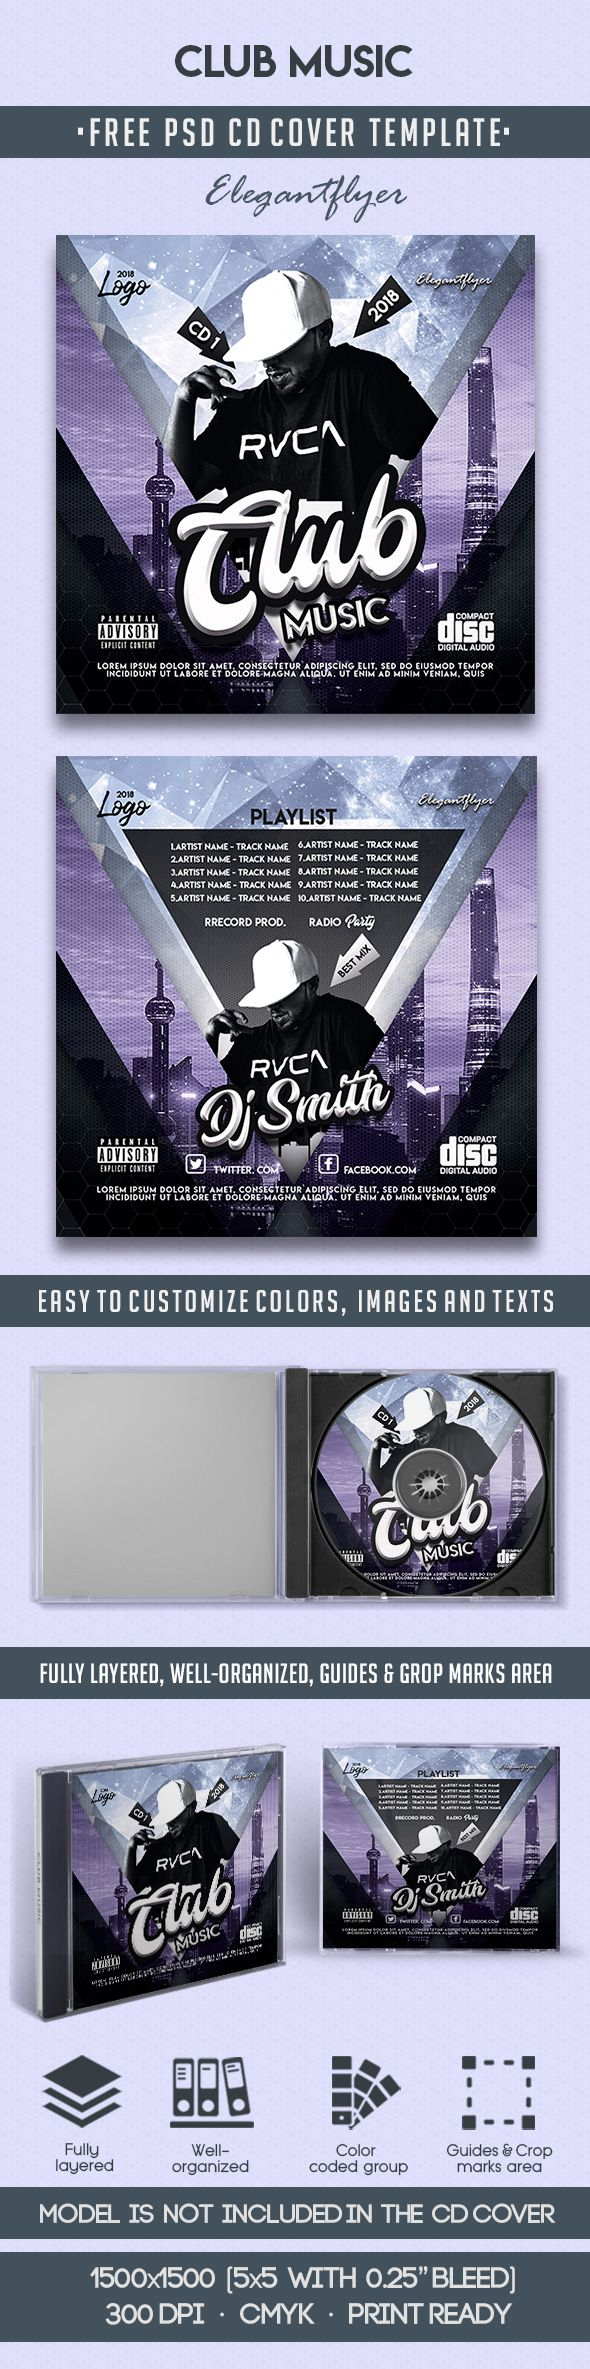 Club Music – Free CD Cover PSD Template